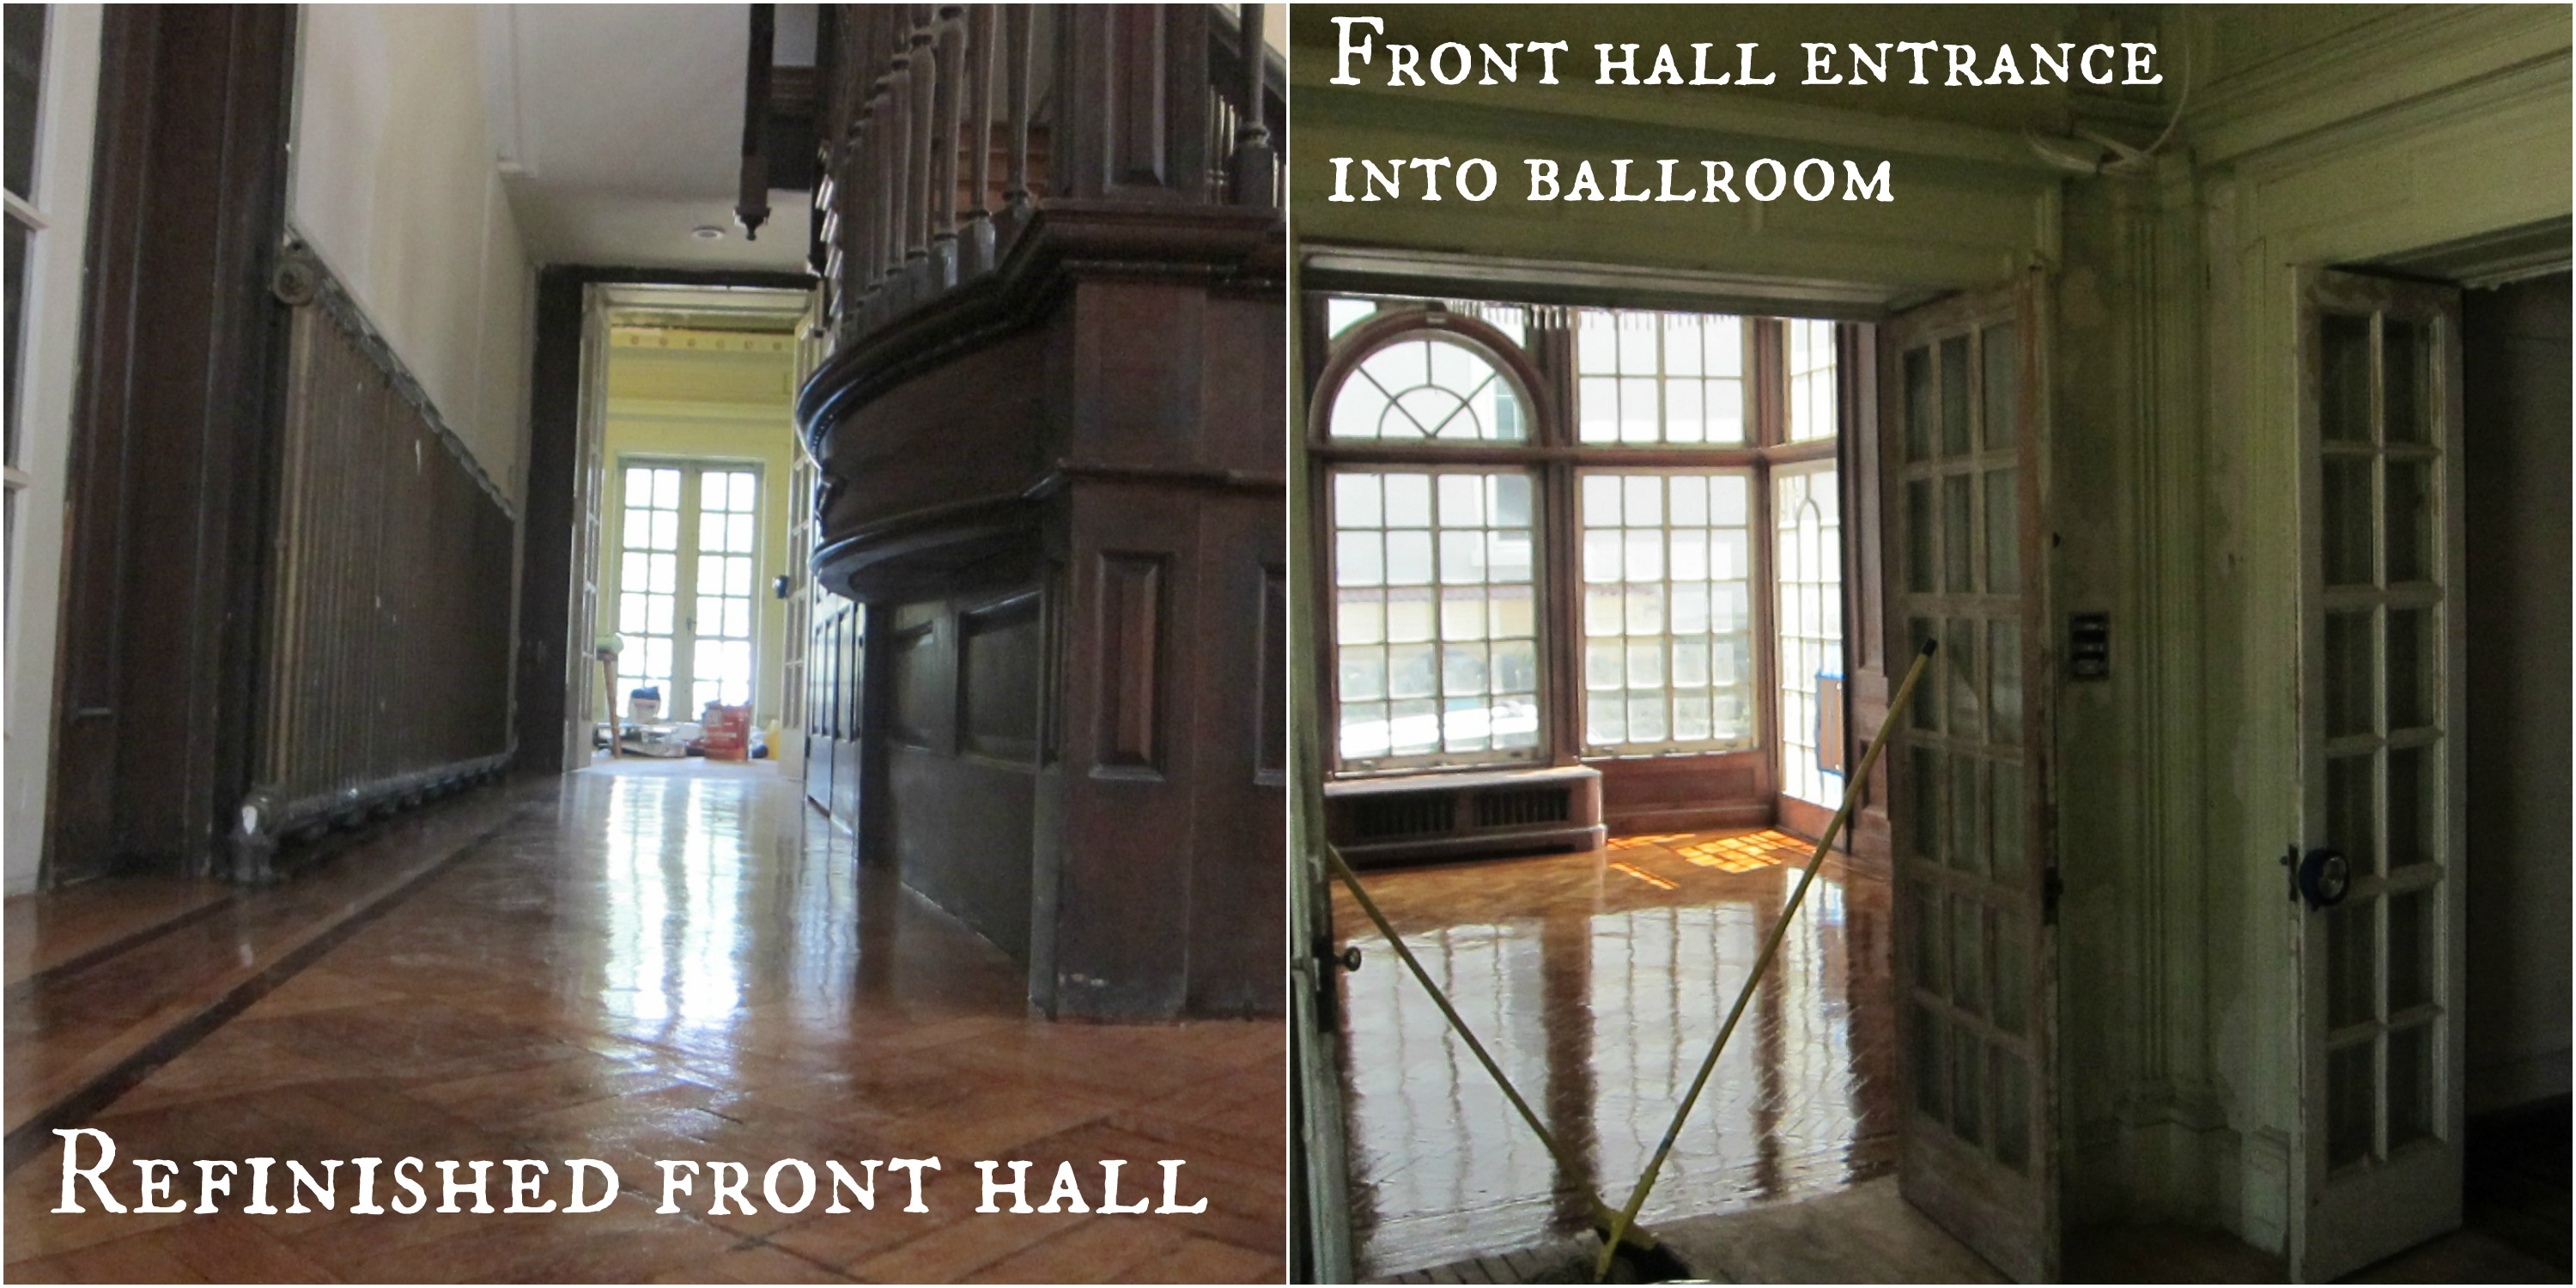 collage front hall and ballroom view text